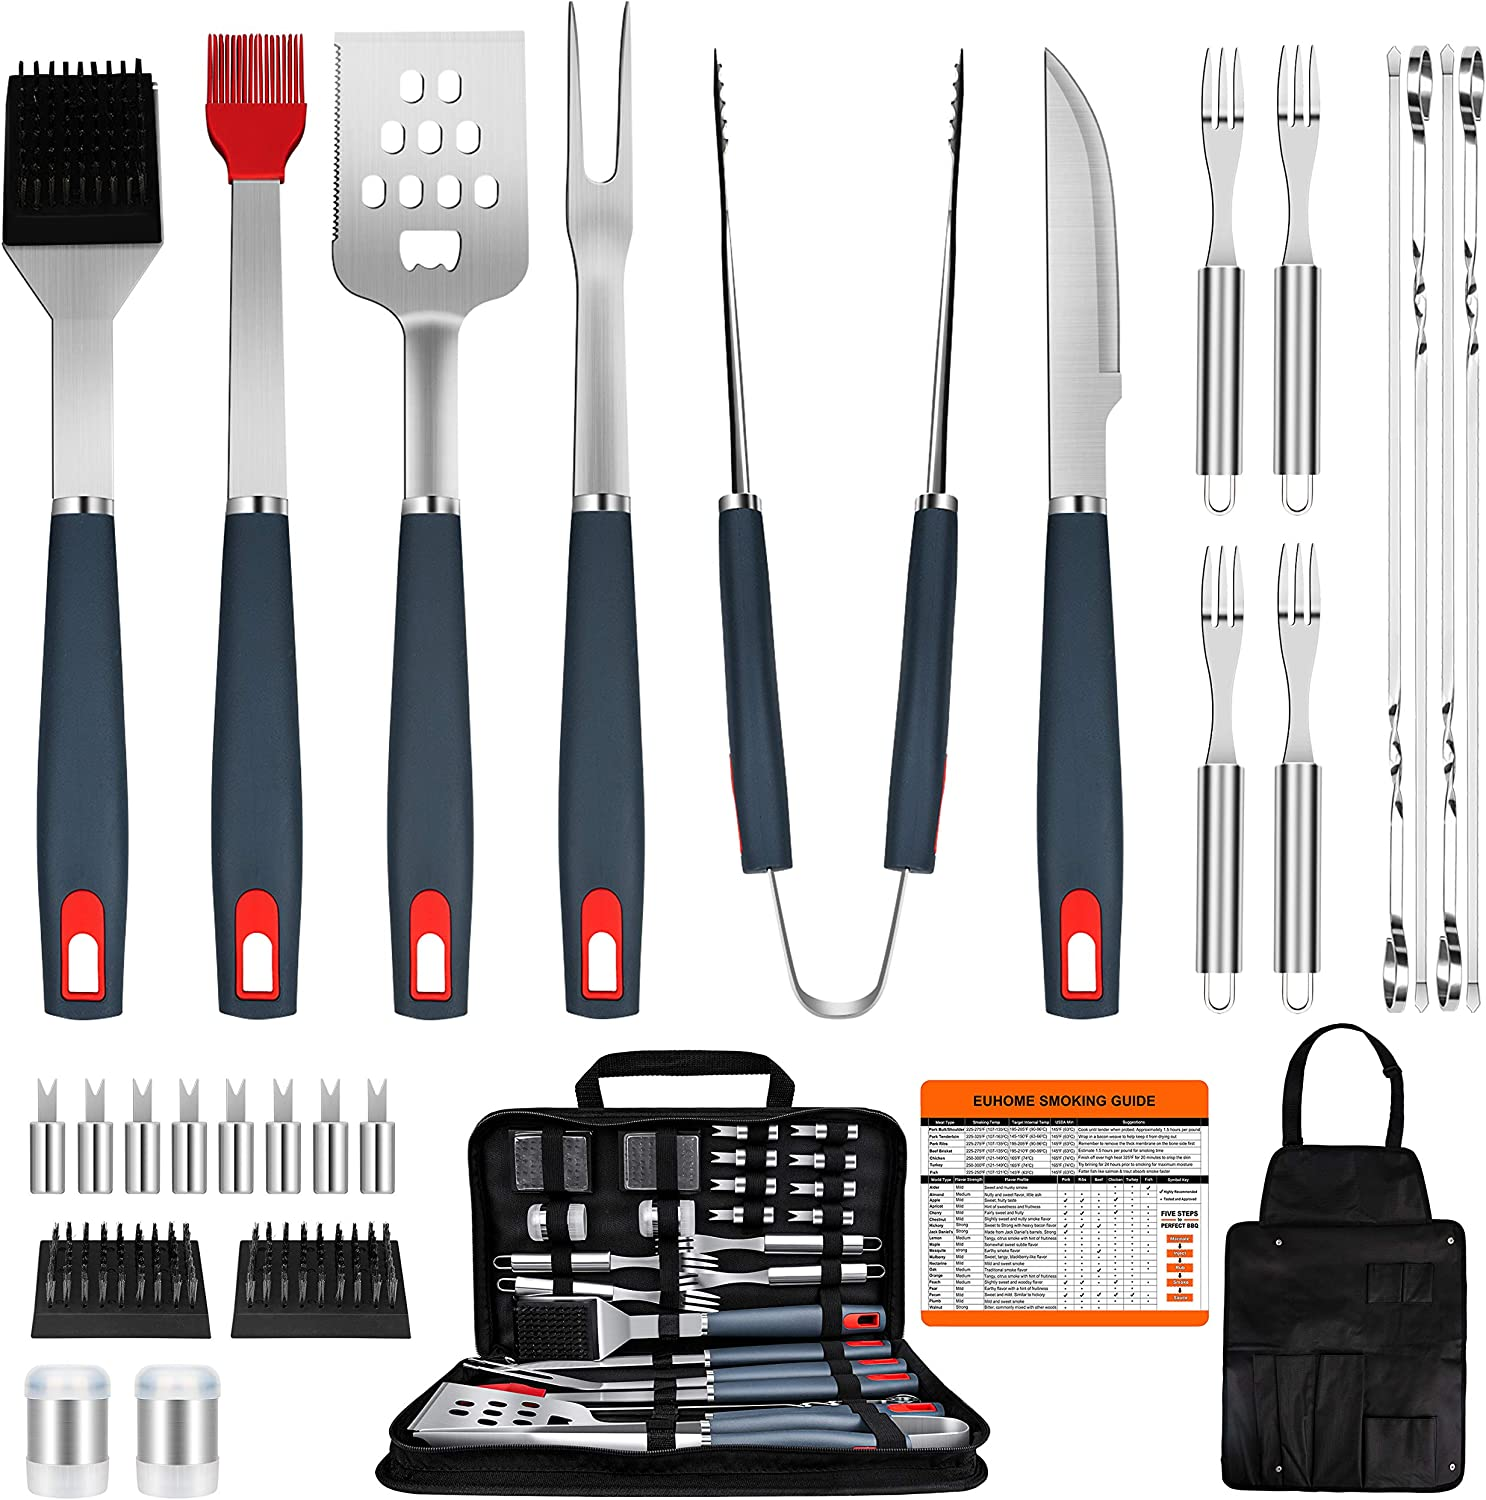 EUHOME BBQ Grill Accessories Heavy Duty Grill Utensils 31 PCS Set Extra Thick Stainless Steel BBQ Grilling Tools with